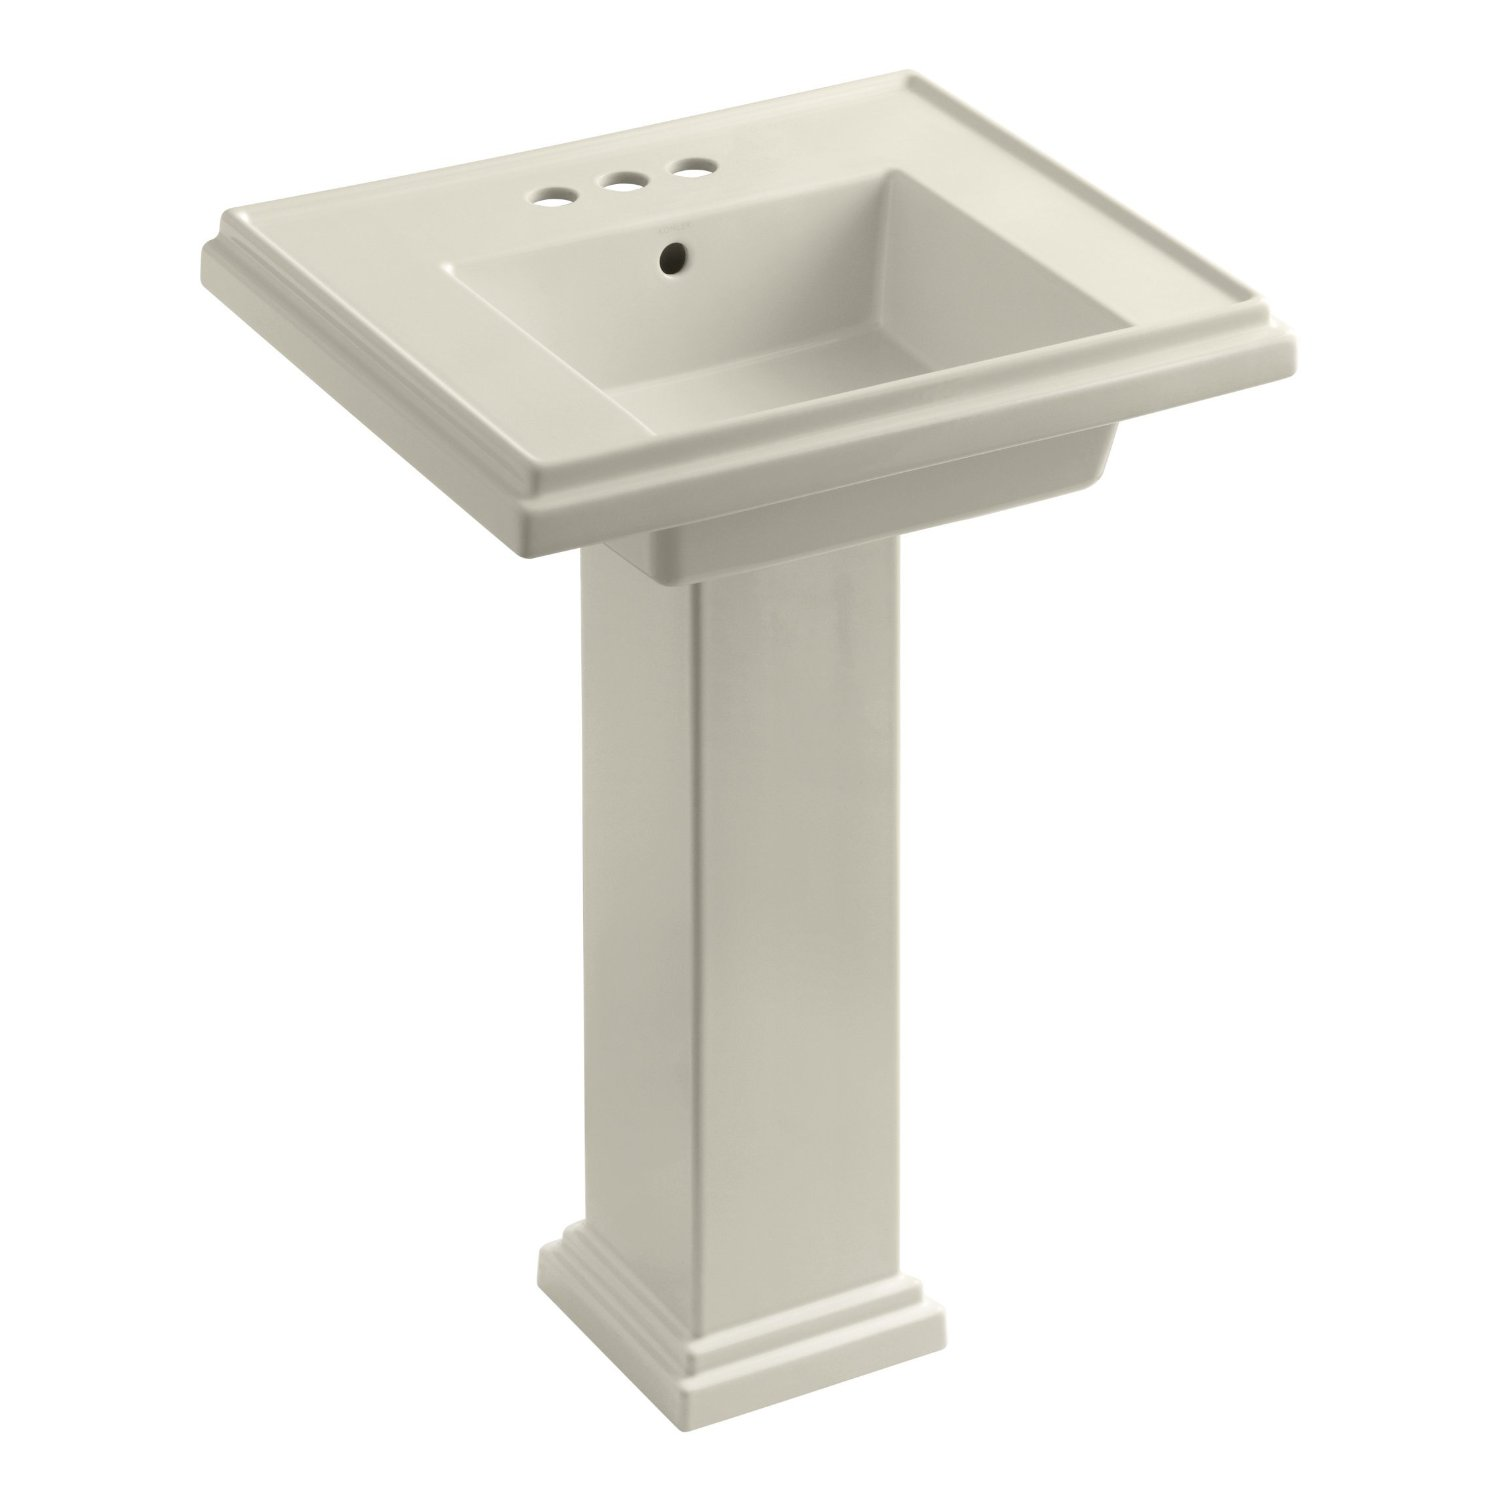 KOHLER K-2844-4-0 Tresham 24-inch Pedestal Bathroom Sink with 4-inch ...